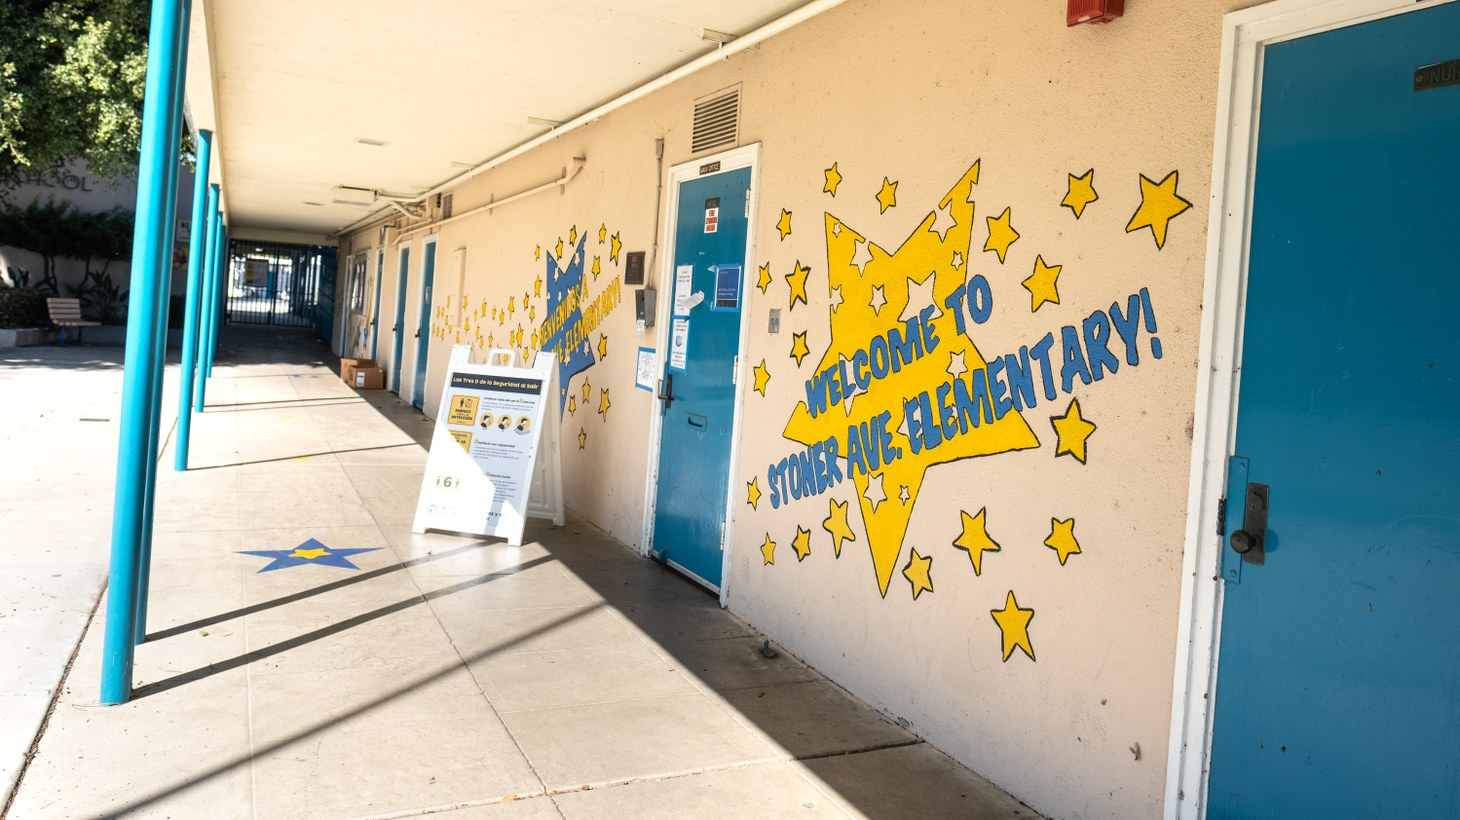 Stoner Elementary School in Culver City is currently closed, with a coronavirus safety sign sitting outside. March 1, 2021.